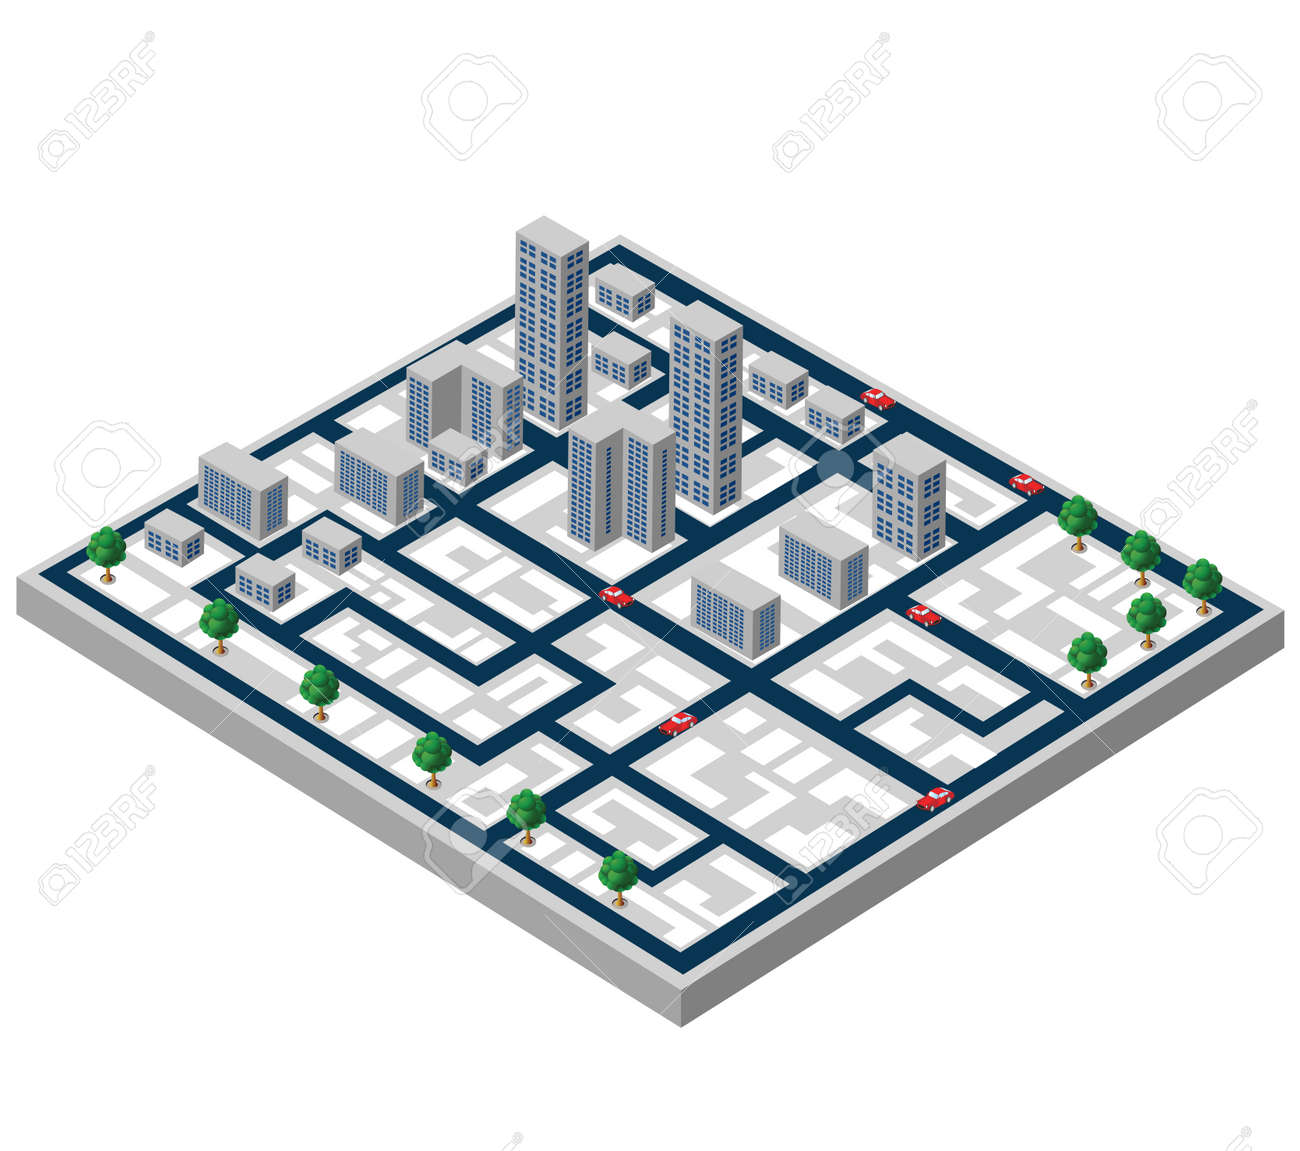 Isometric buildings on a city map on a white background Stock Vector - 22345601